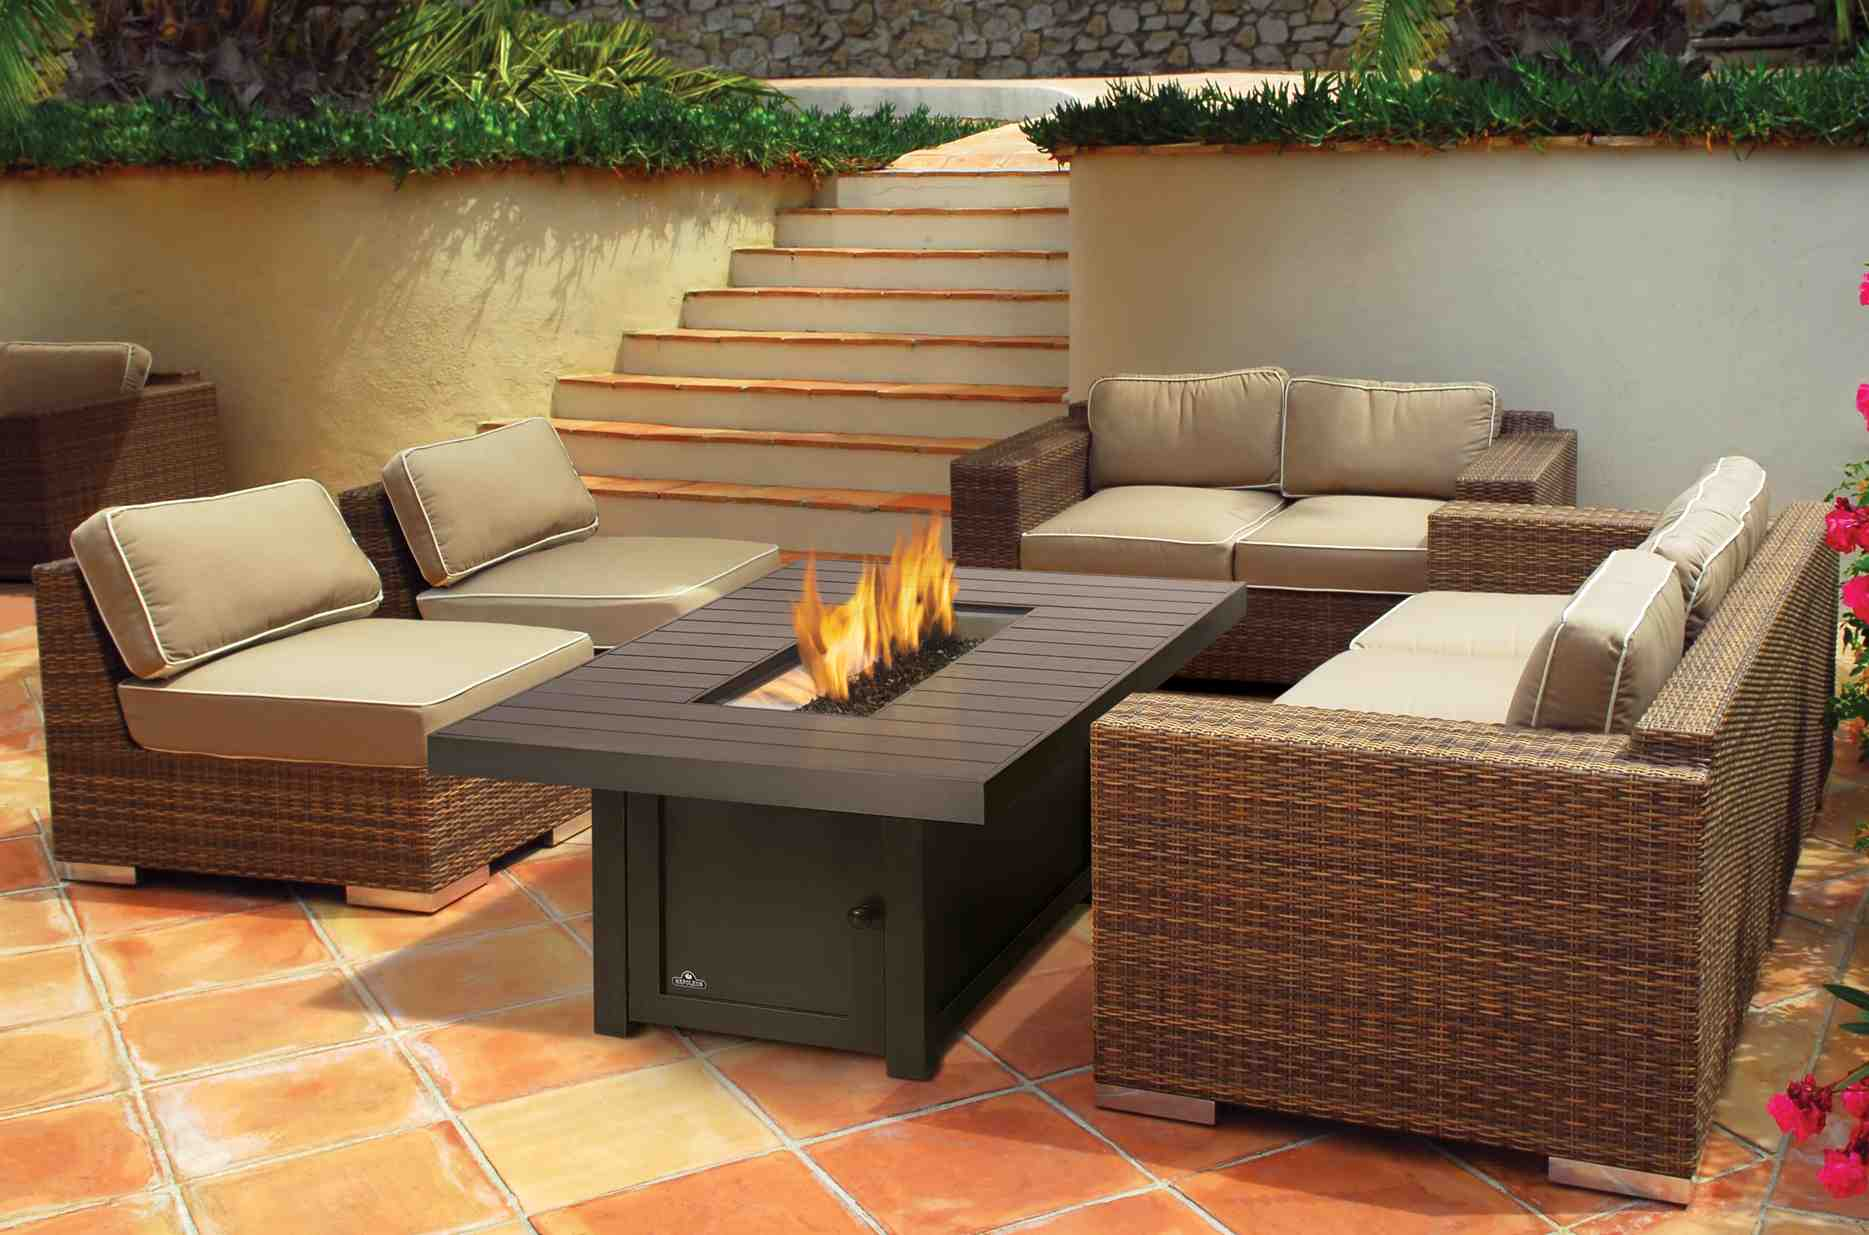 fireplaces inserts new of wood fireplace indoor contemporary design best outdoor ideas gas